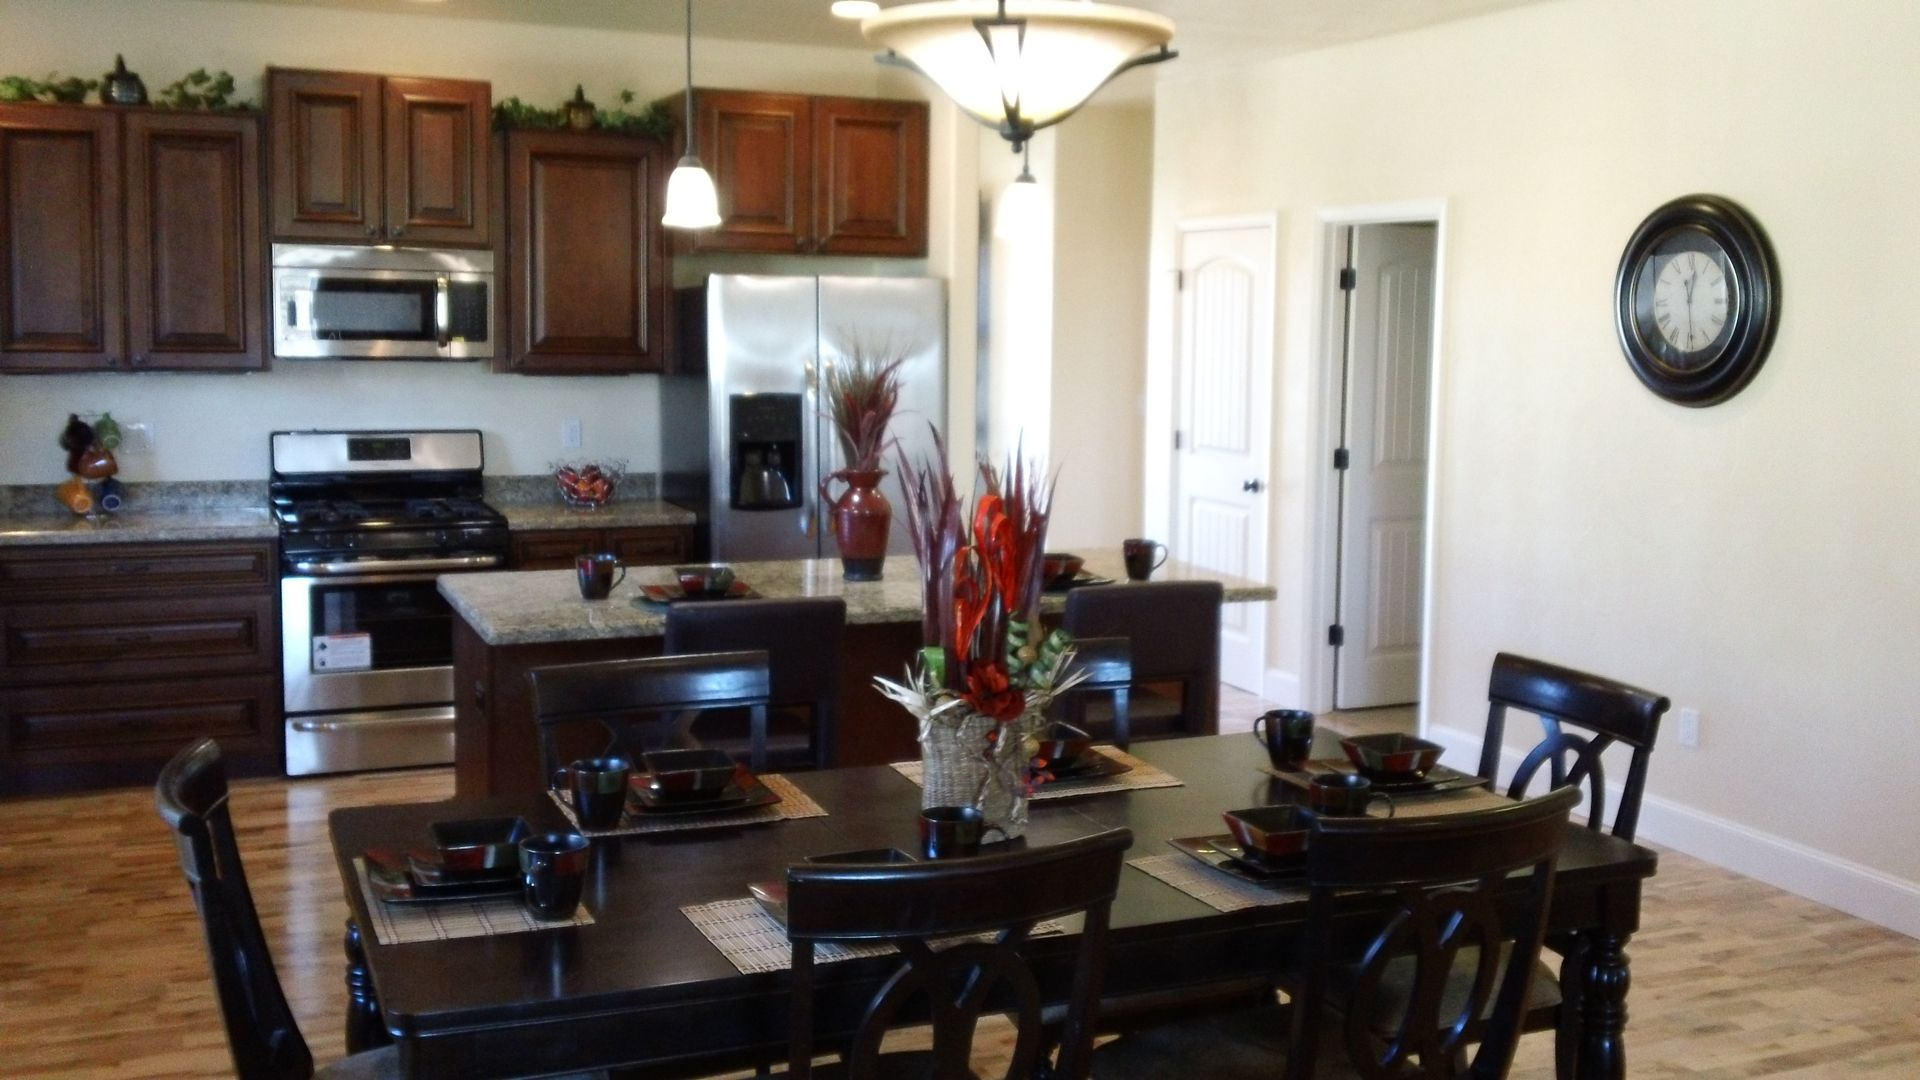 model home kitchens   Model Home Now Open — Centennial Village in ...